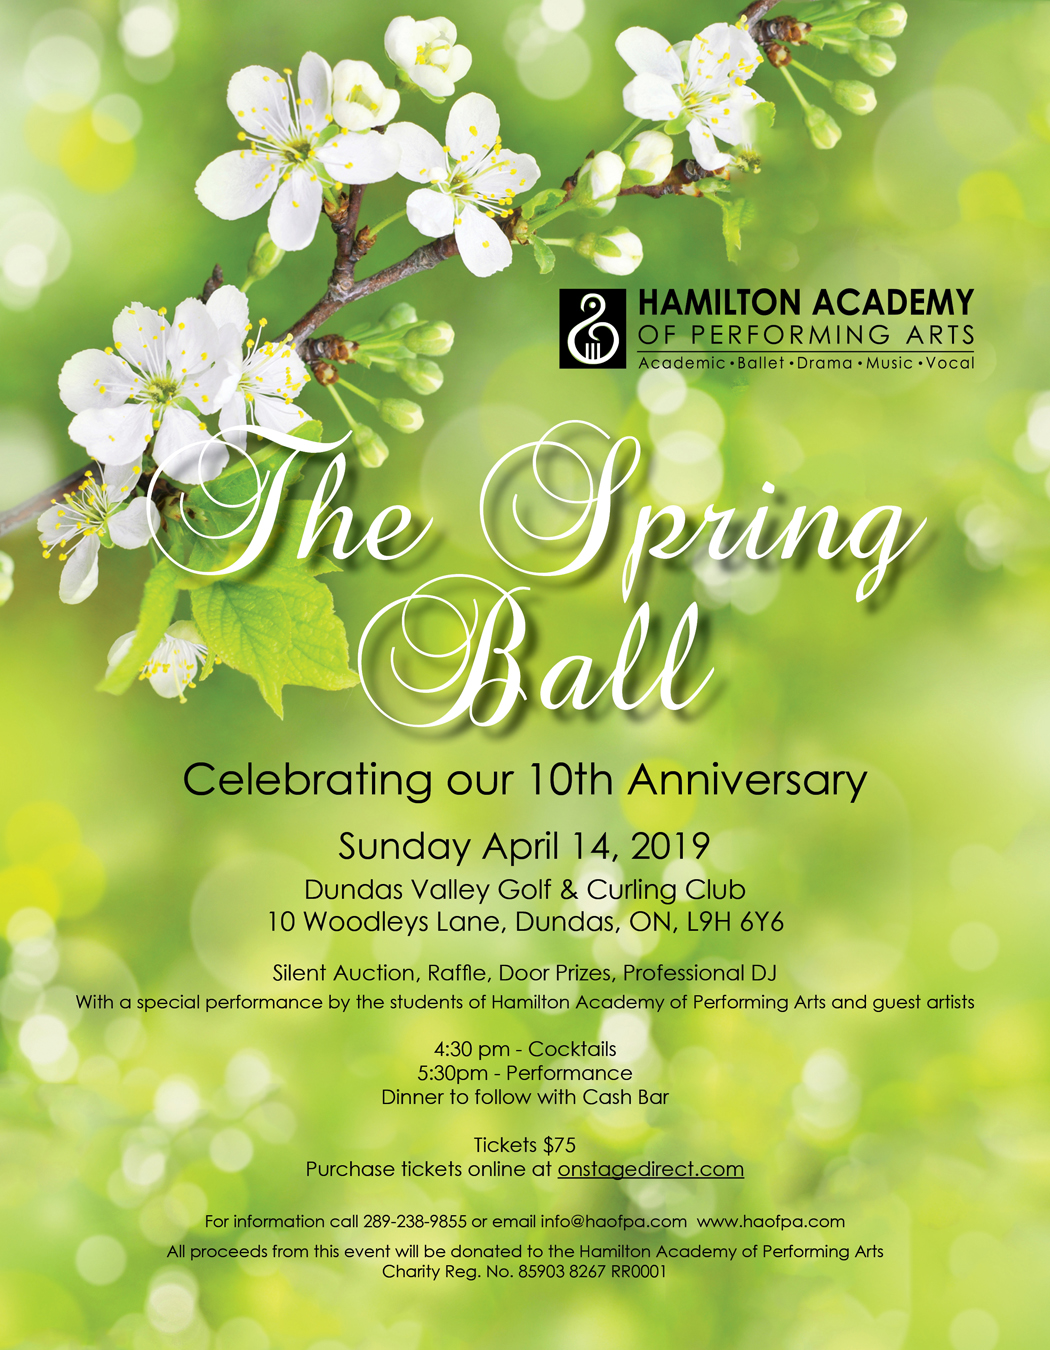 Spring Ball Poster - Hamilton Academy of Performing Arts